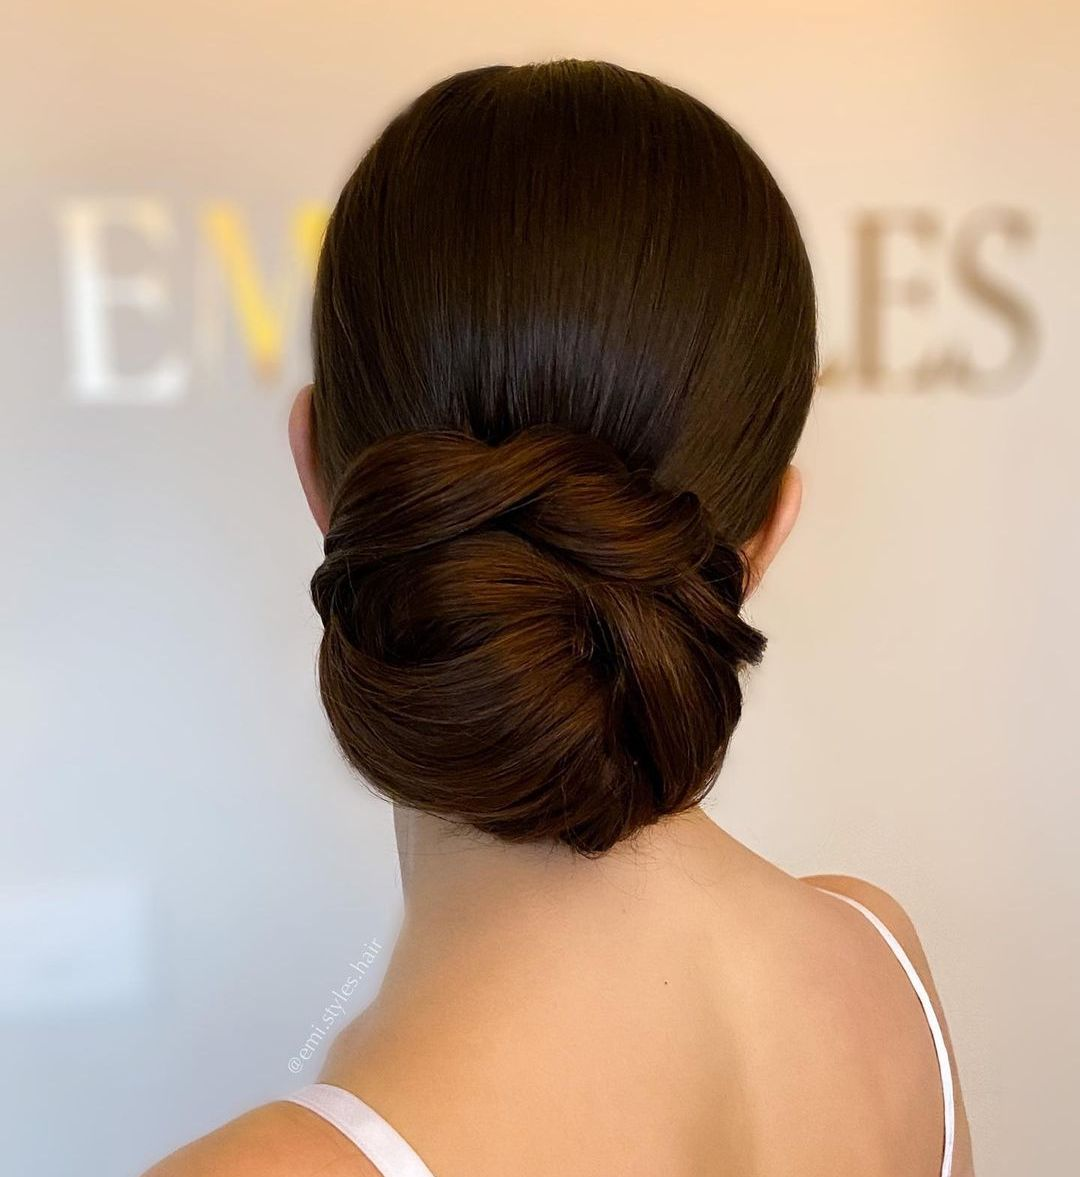 Sleek Low Bun Hairstyle with a Twist